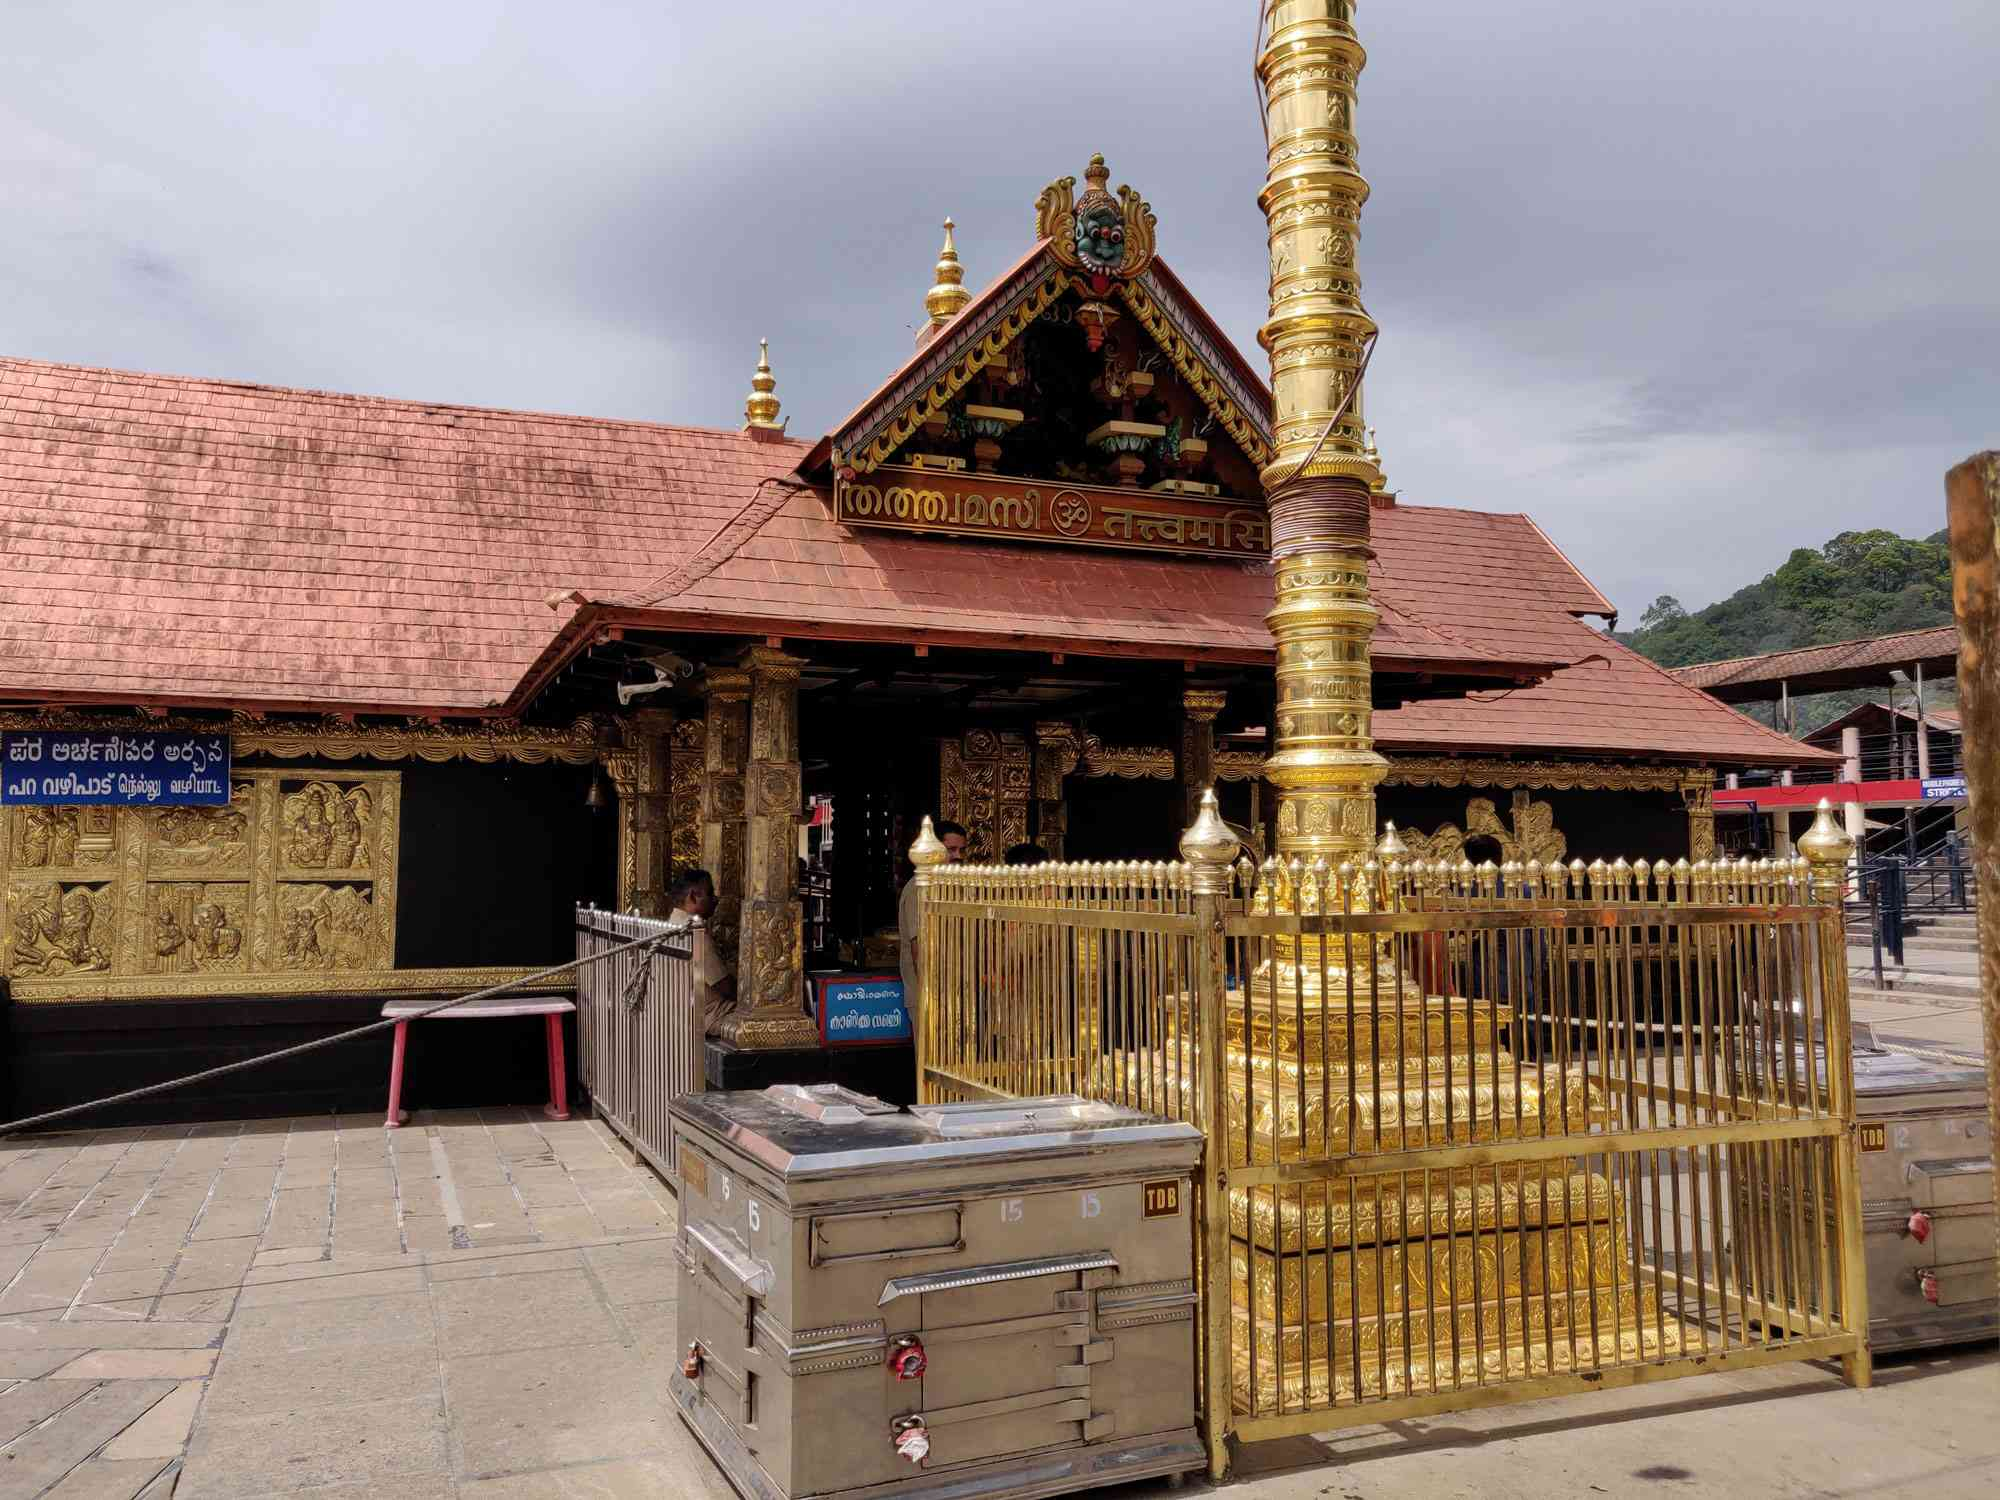 Sabarimala's Ayyappa temple is one South India's most popular pilgrimage centres. Photo credit: TA Ameerudheen